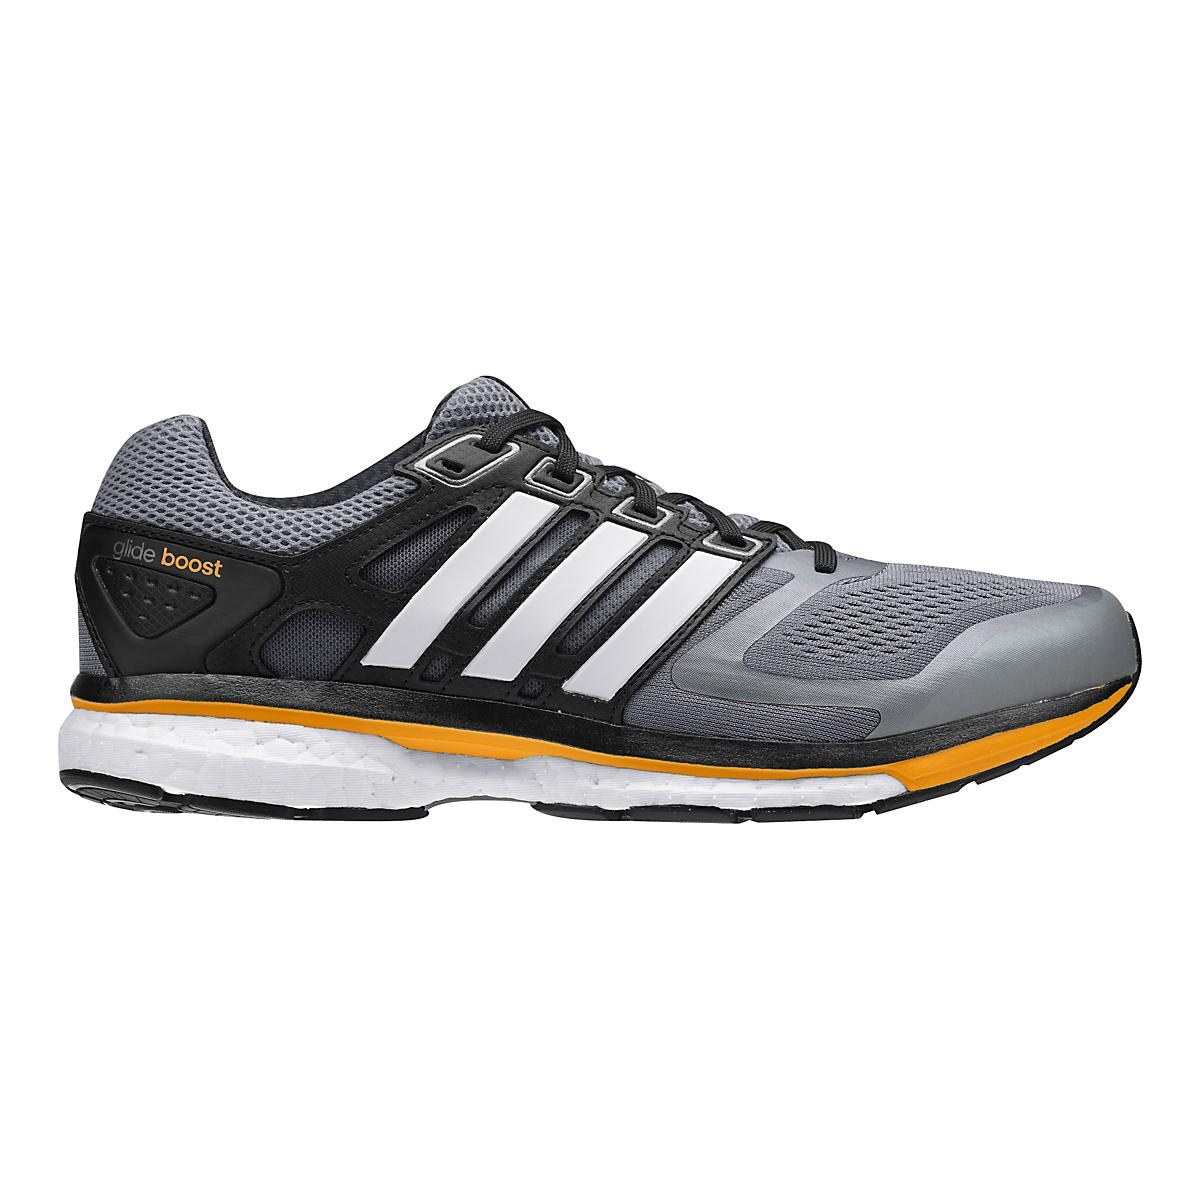 cáncer Sentirse mal Soportar  Mens adidas Supernova Glide 6 Boost Running Shoe at Road Runner Sports